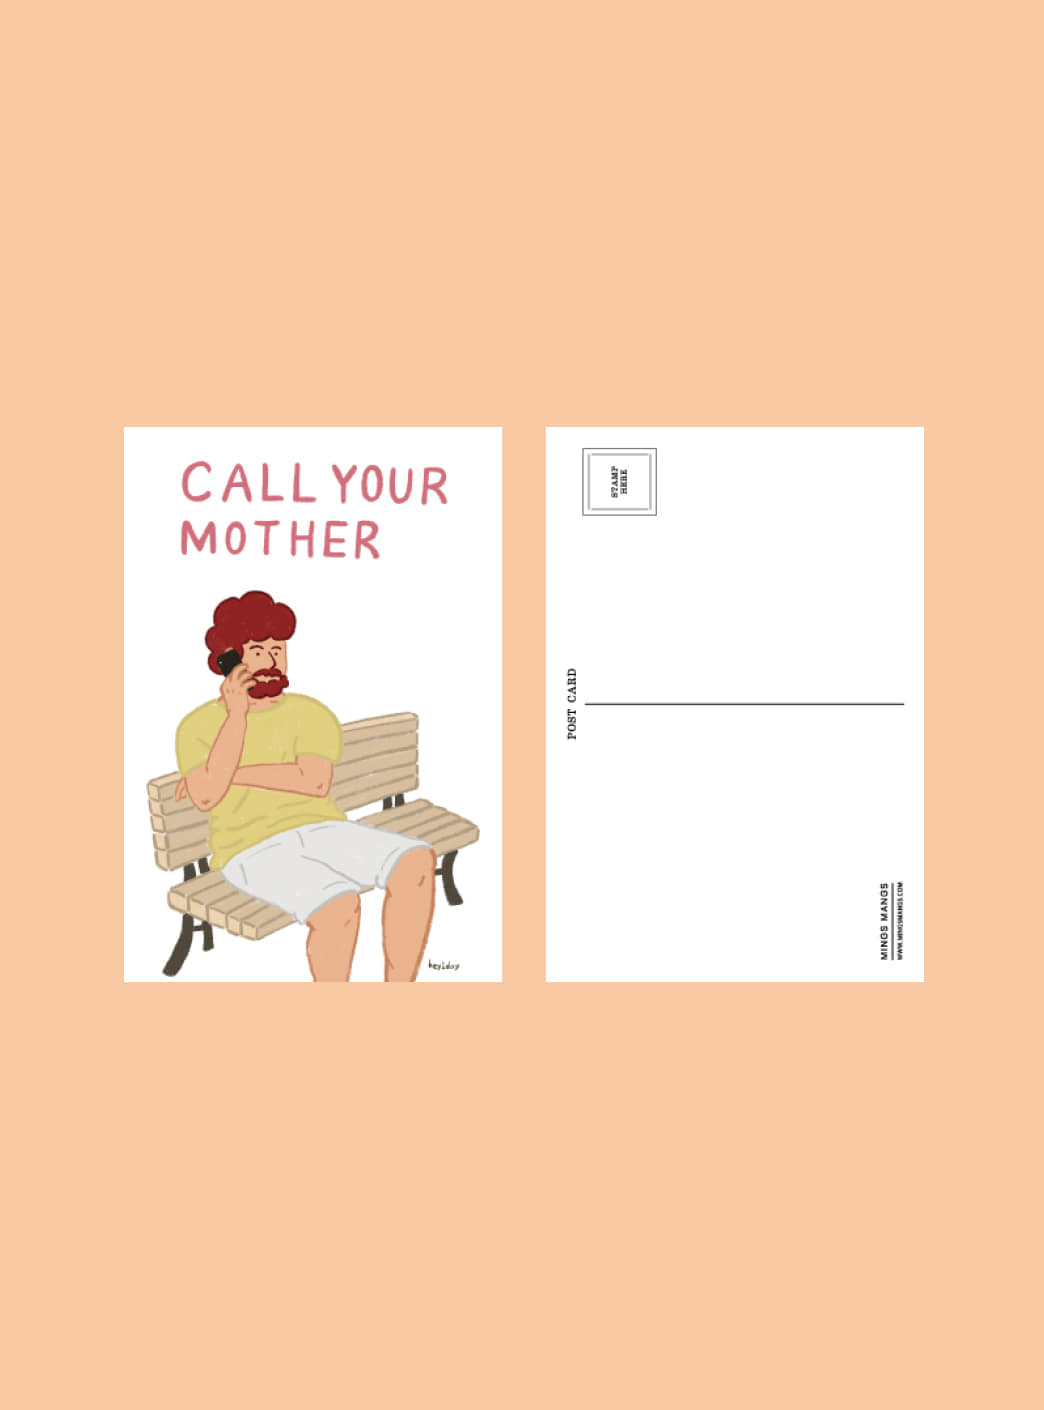 call your mother 엽서